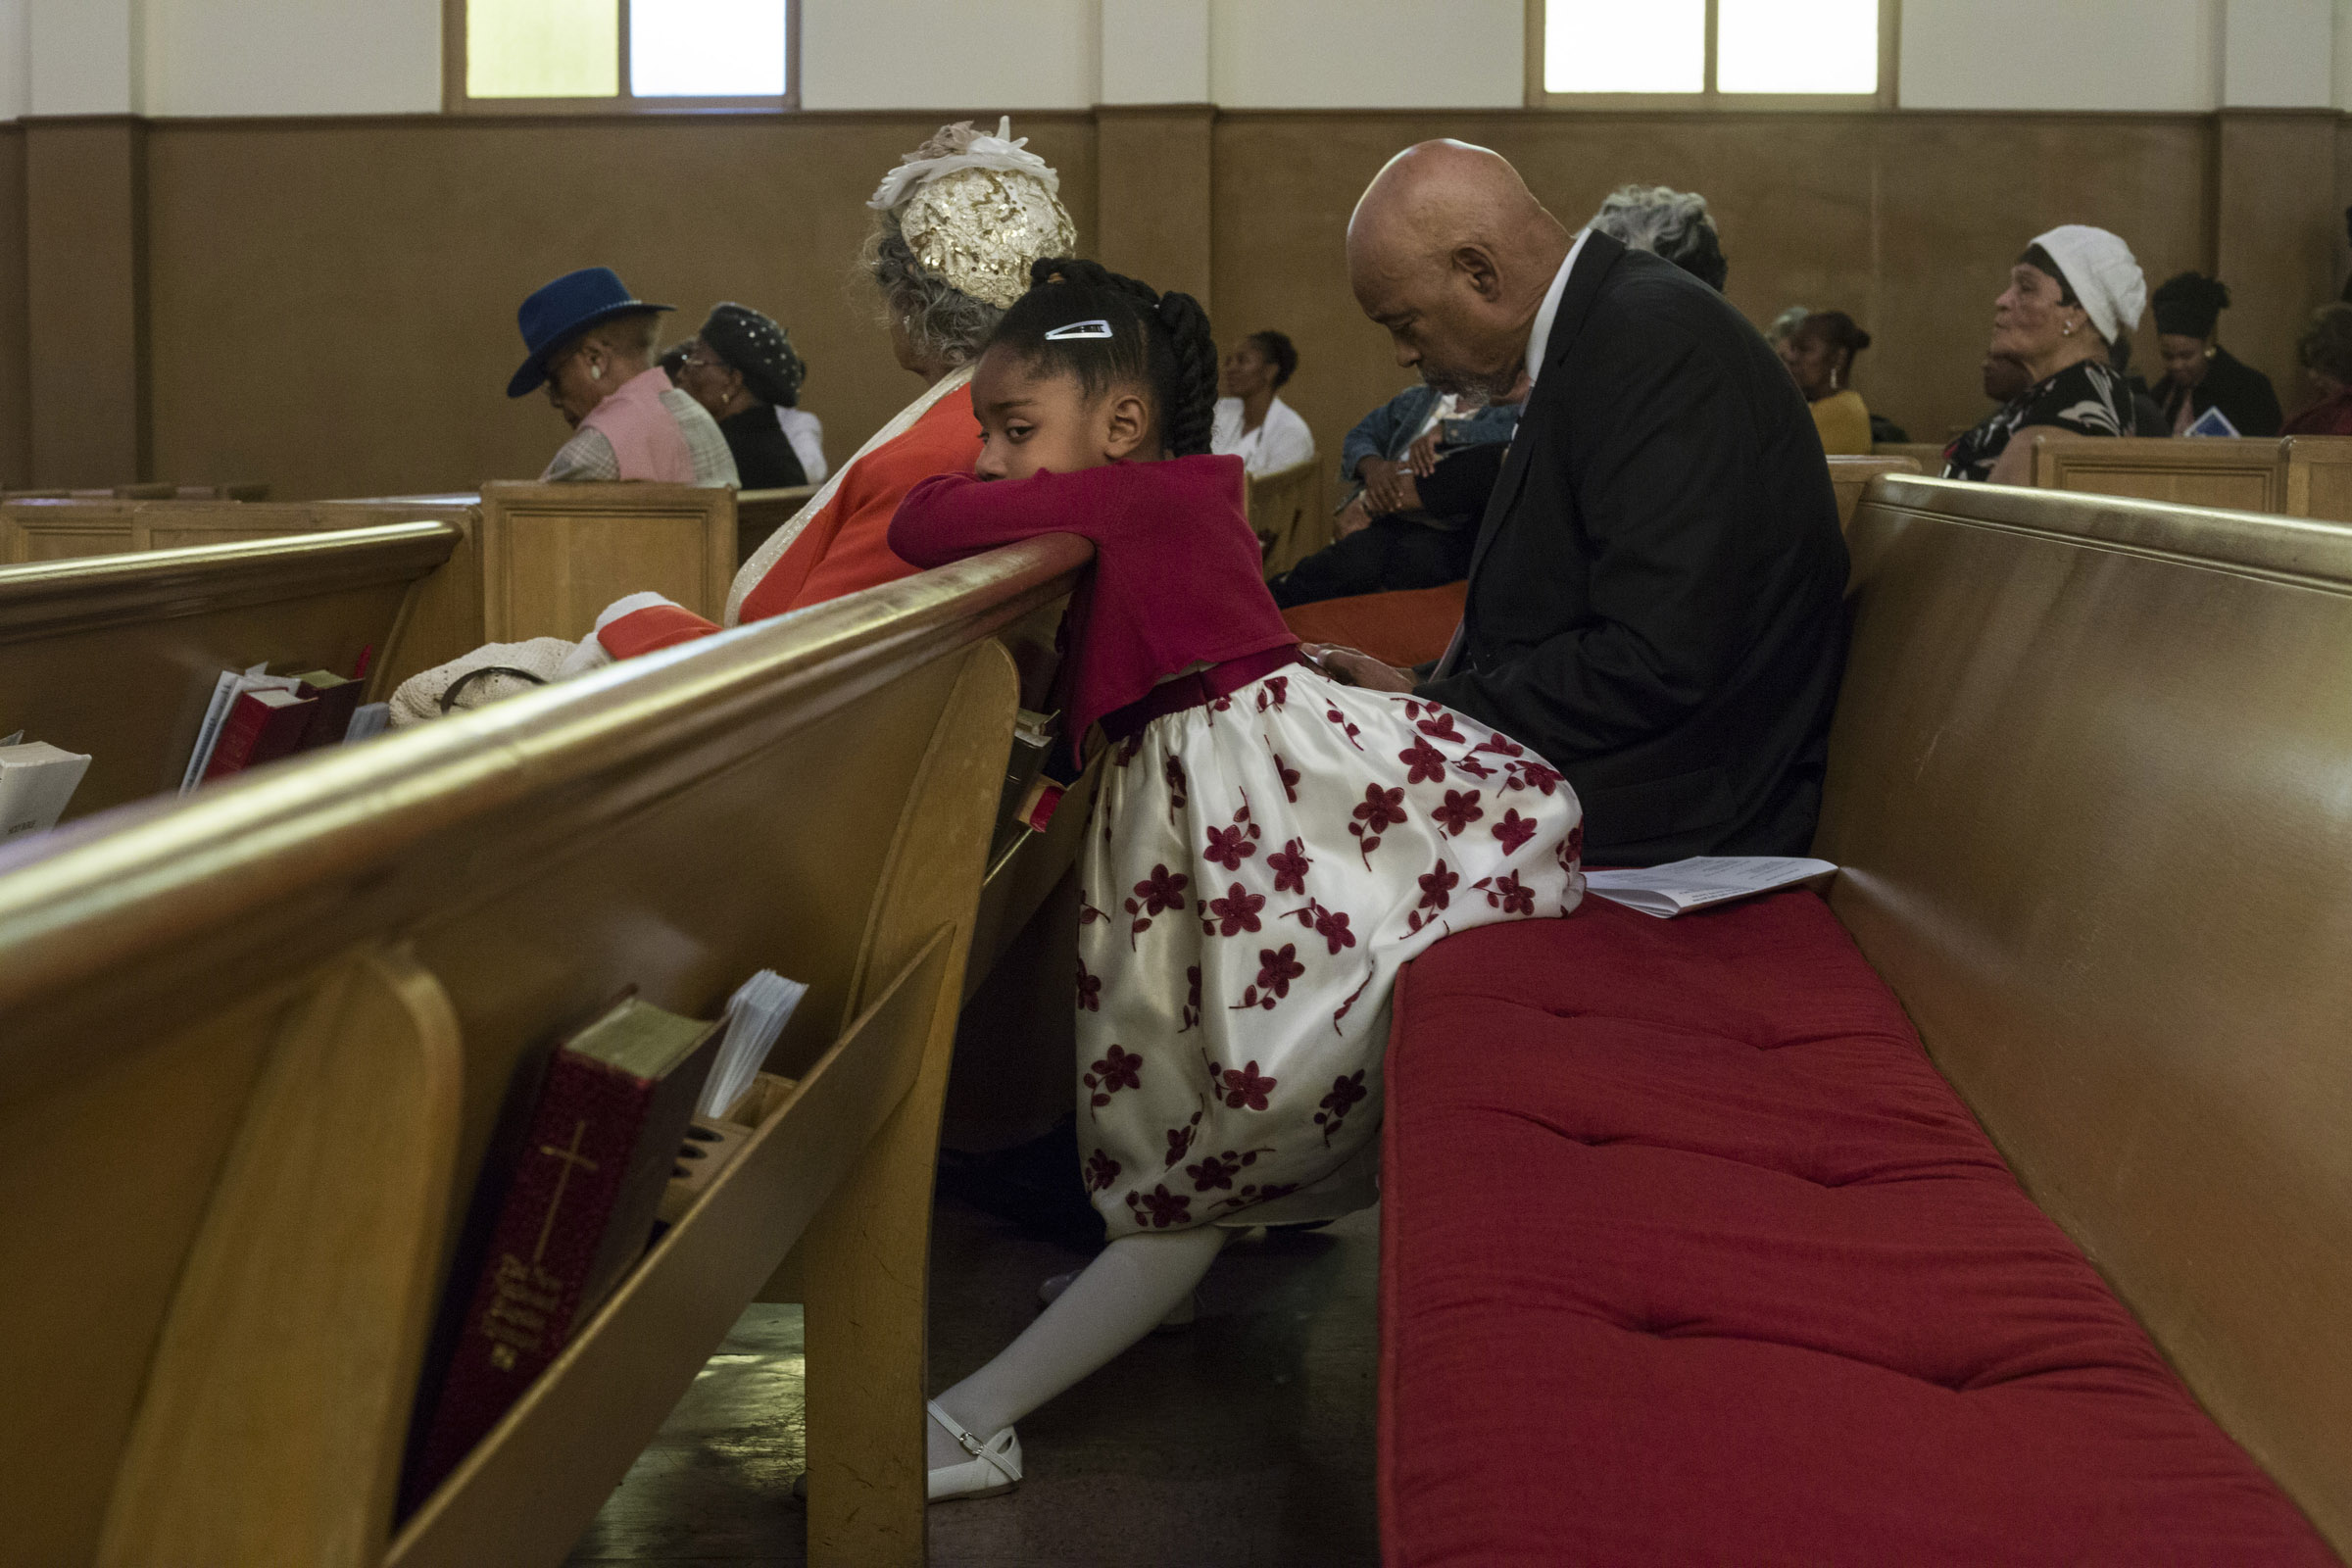 Acacia Brownlee, 5, sits on the edge of a pew during the service at the Third Baptist Church in the Fillmore district of San Francisco, California, on Sunday, November 5, 2017. (Photo by Brittany Greeson)